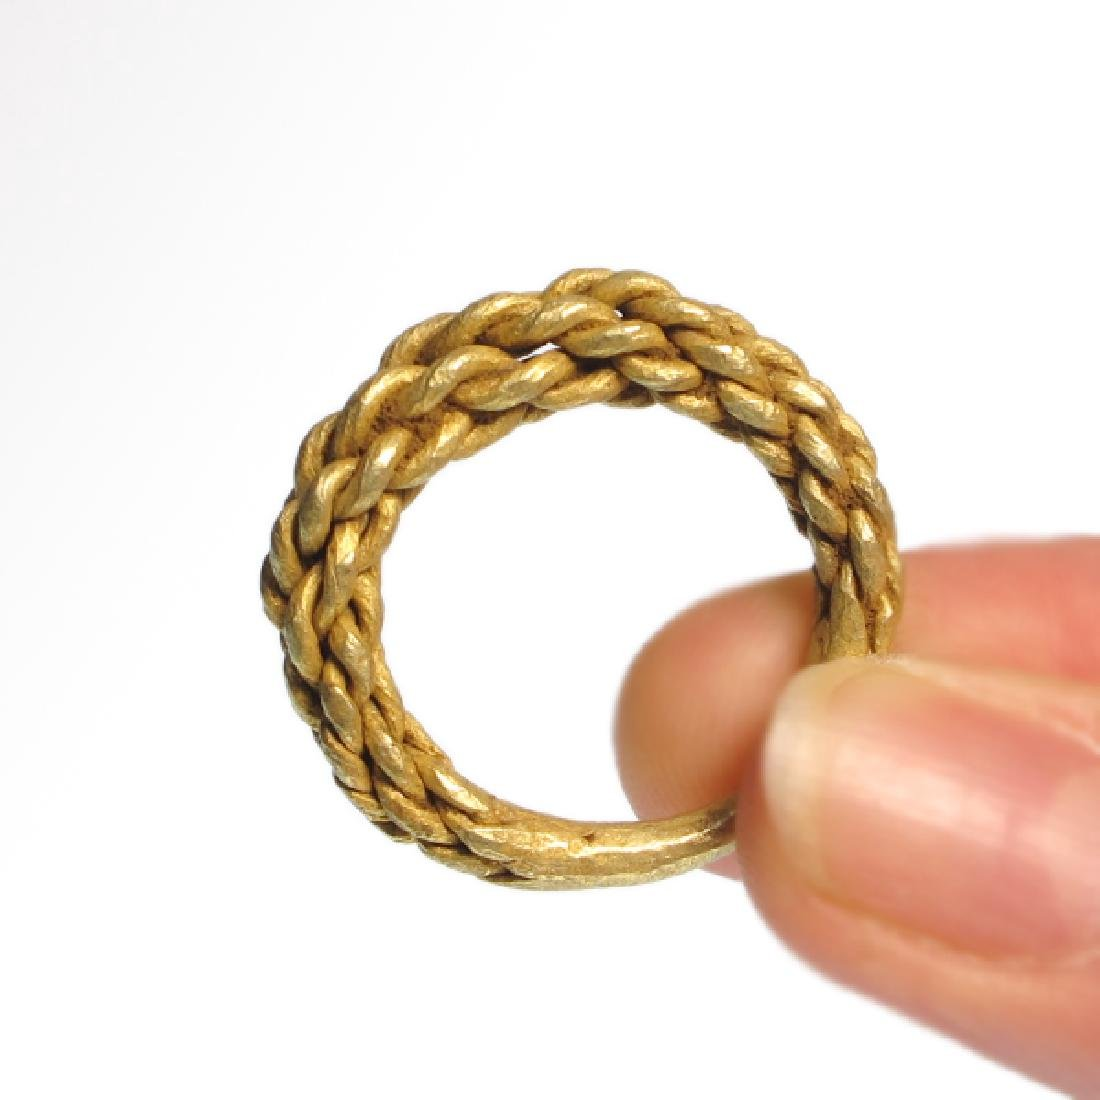 Viking Gold Ring, c. 10th Century A.D. - 2